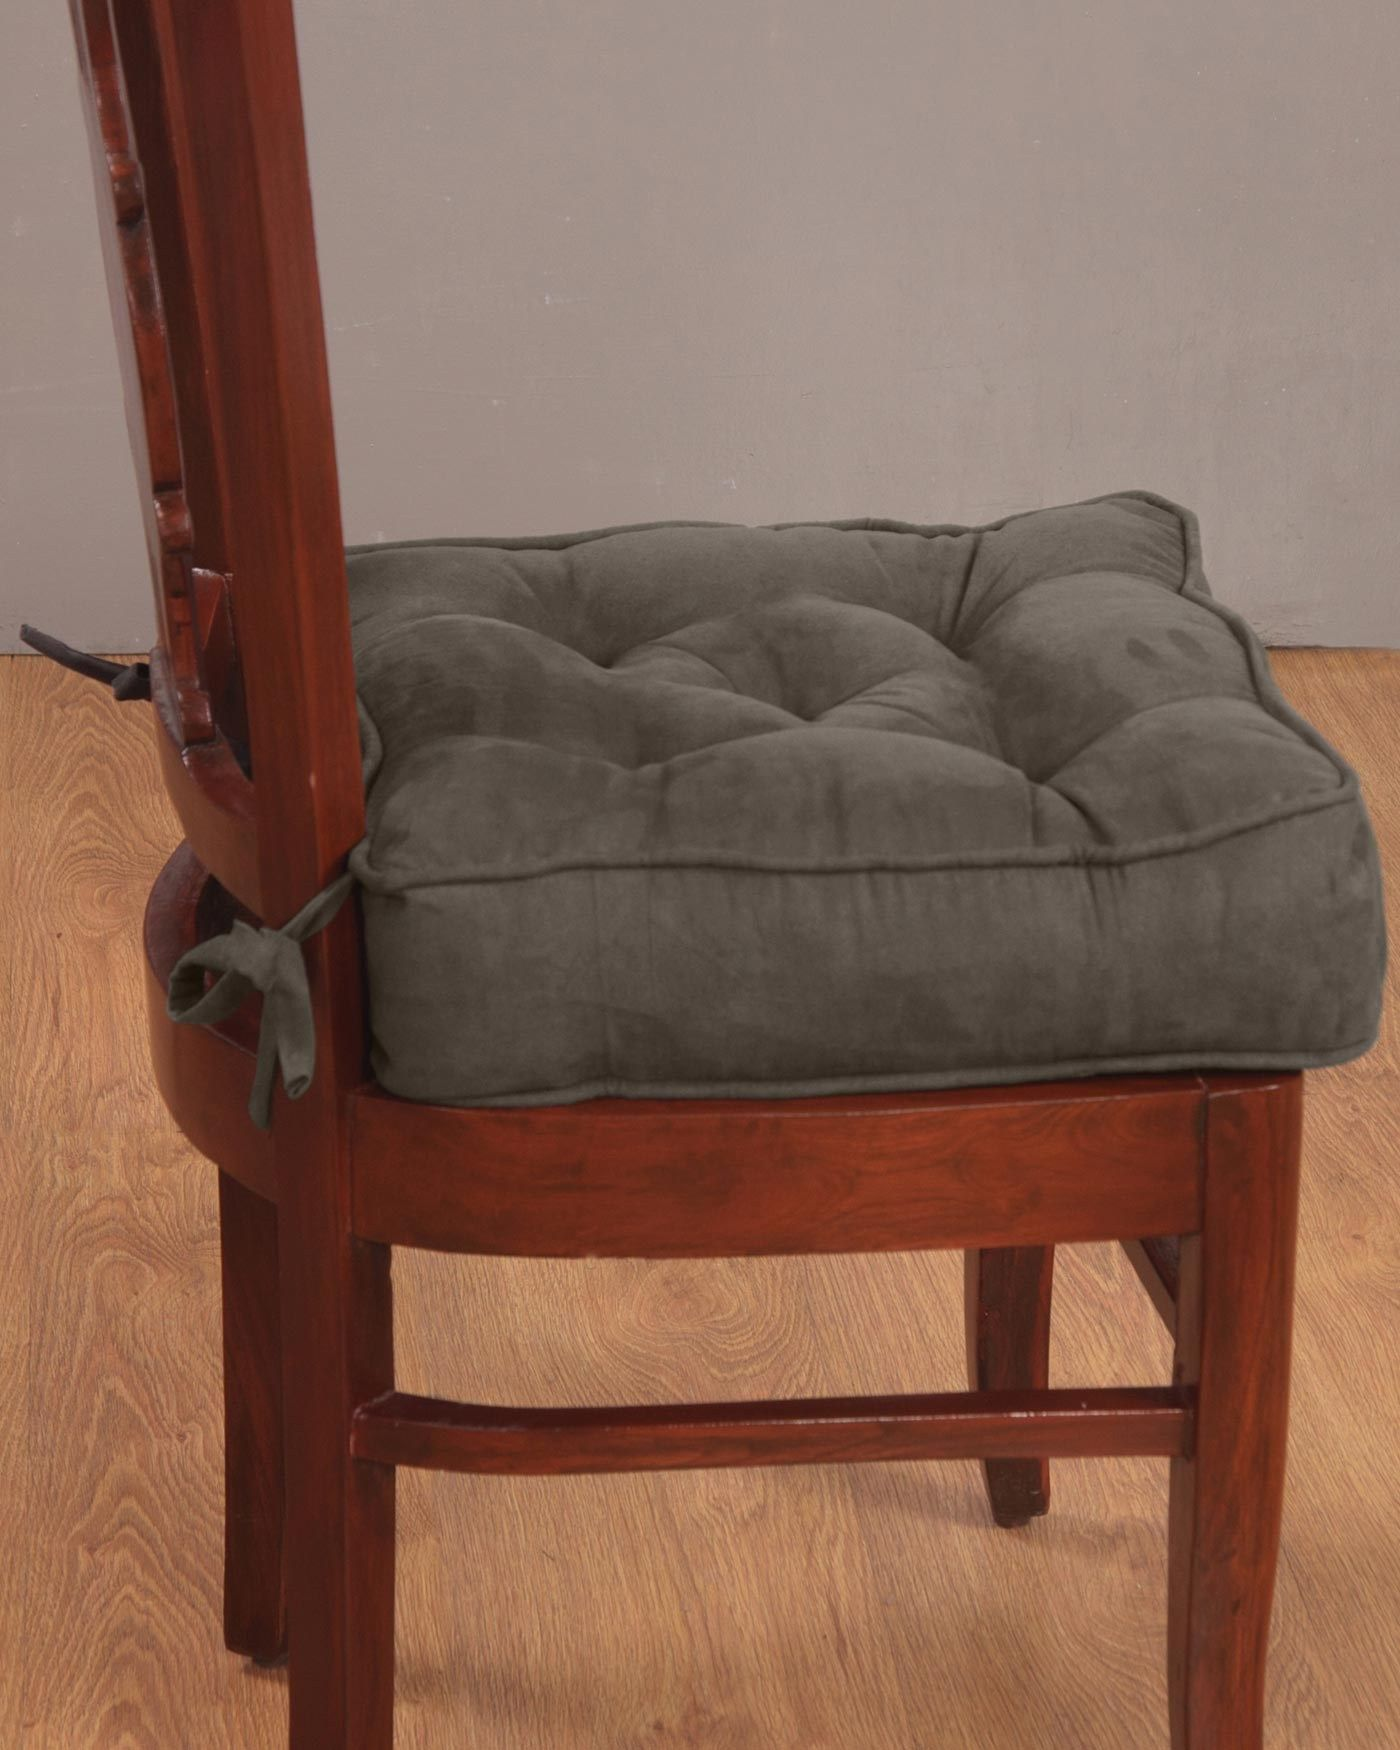 Dining Chair Booster Cushion In Faux Suede From Homescapes Has Been